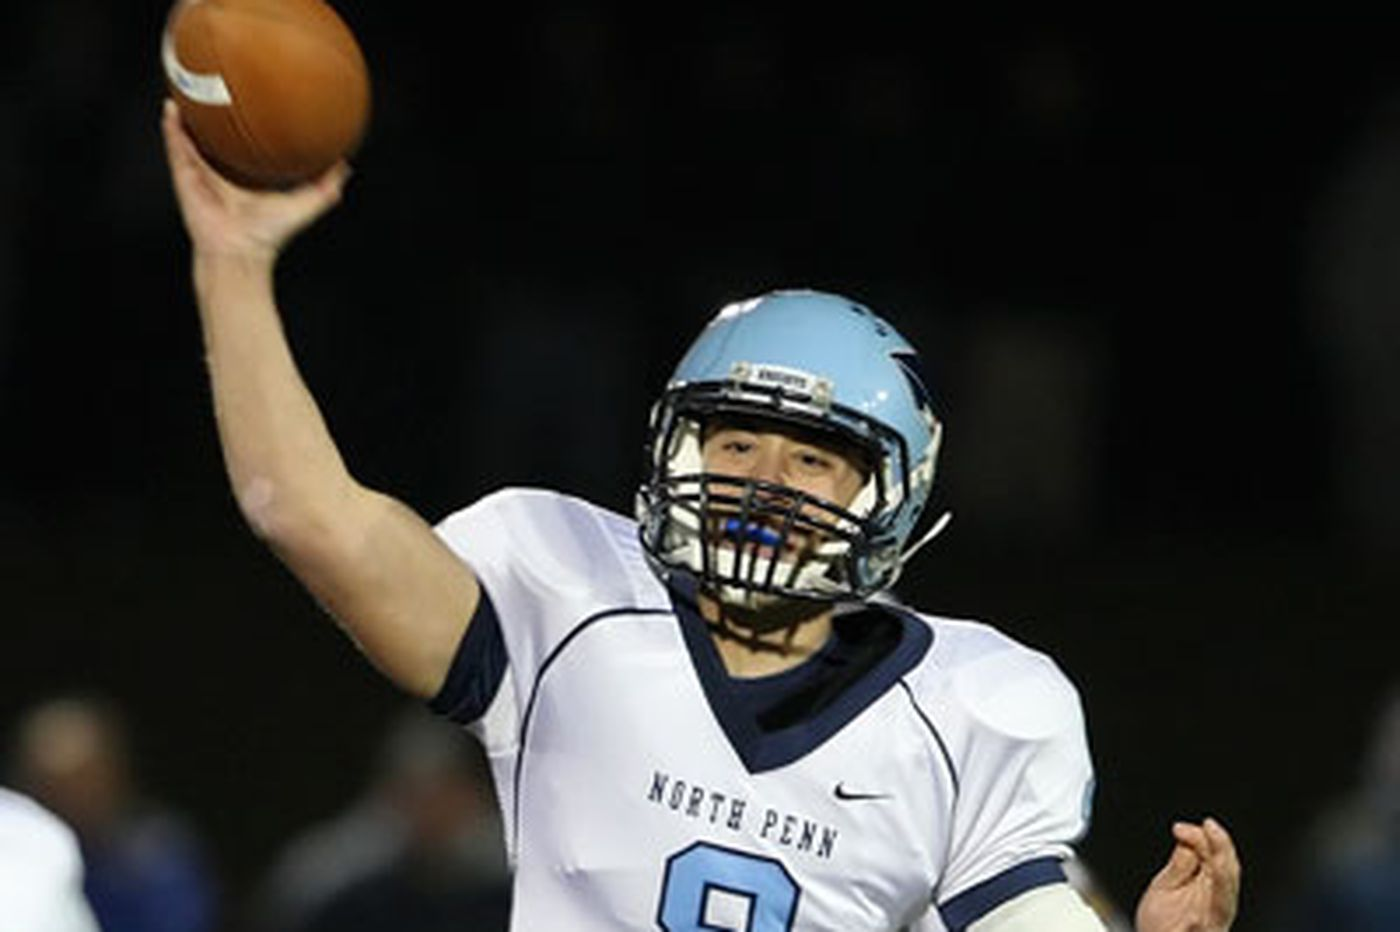 North Penn aiming for first state title since 2003